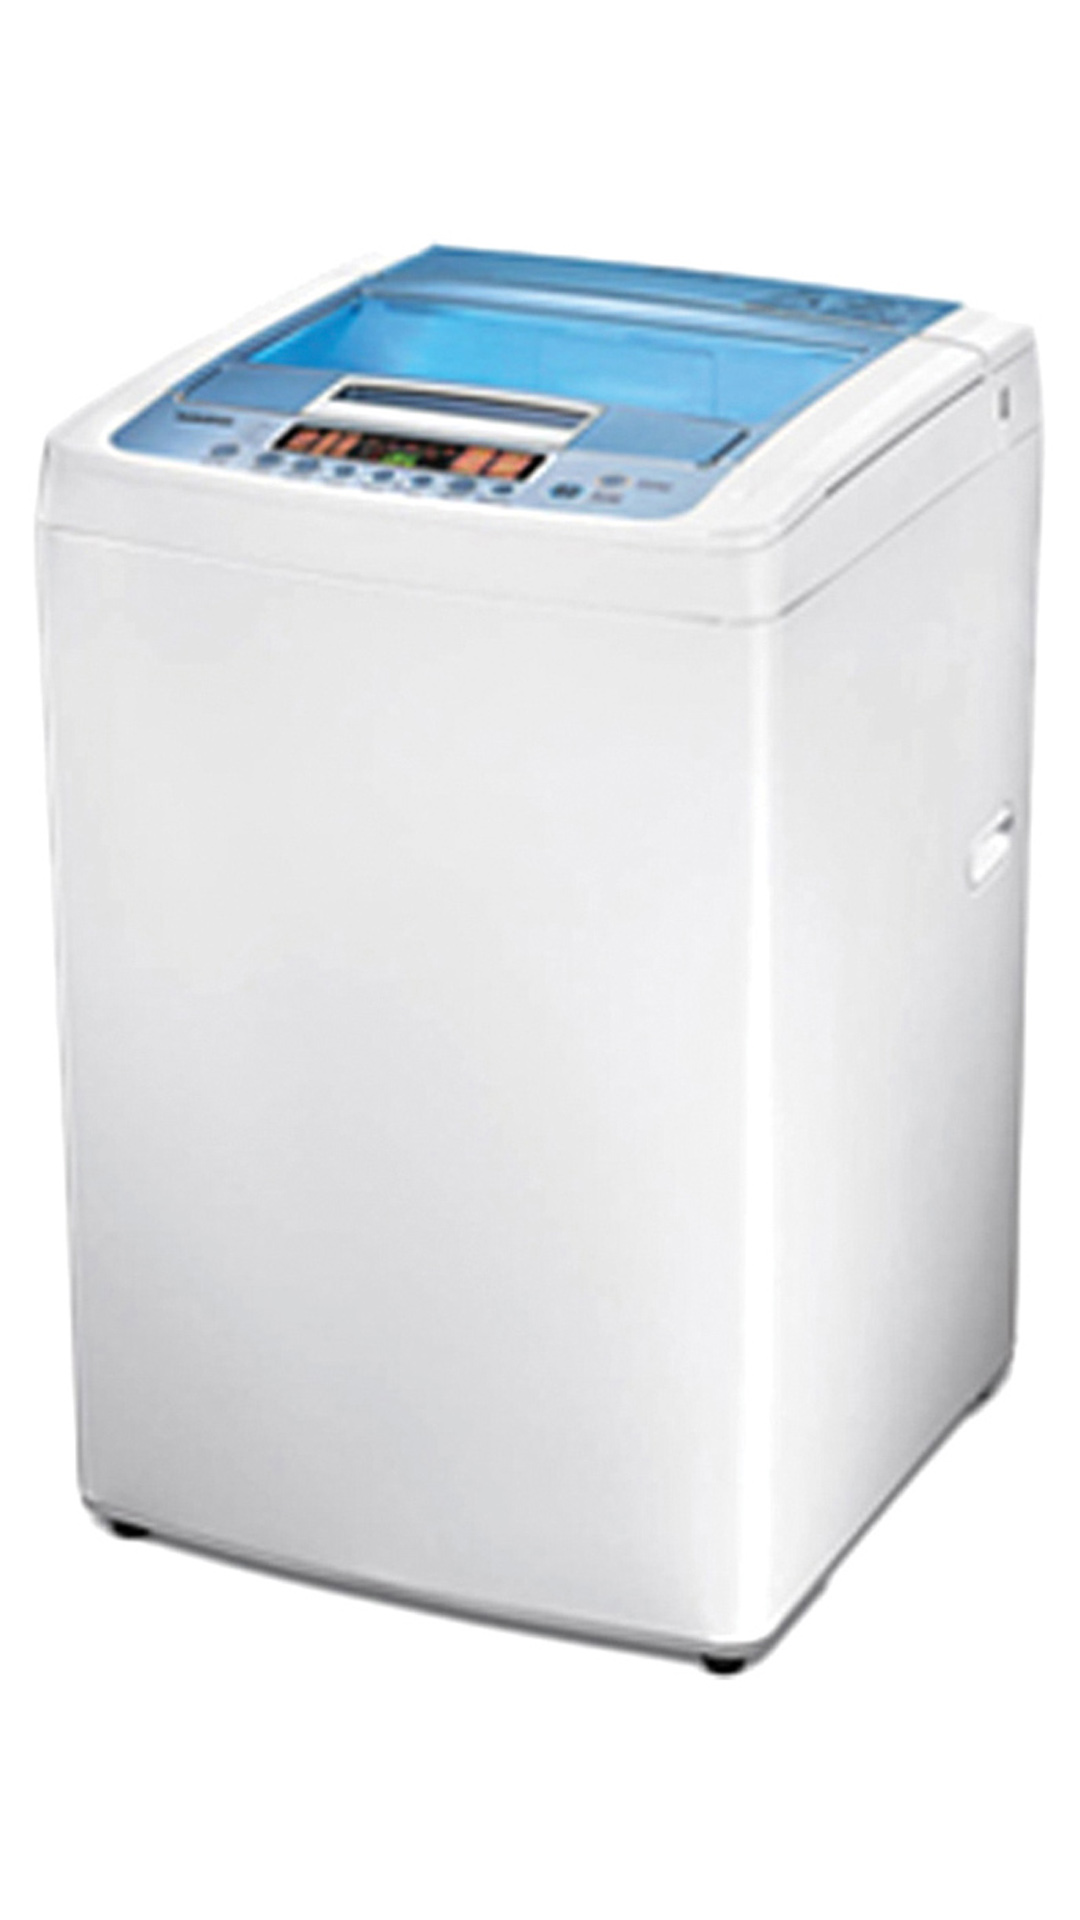 LG T7508TEDLL 6.5 Kg Fully Automatic Top Loading Washing Machine